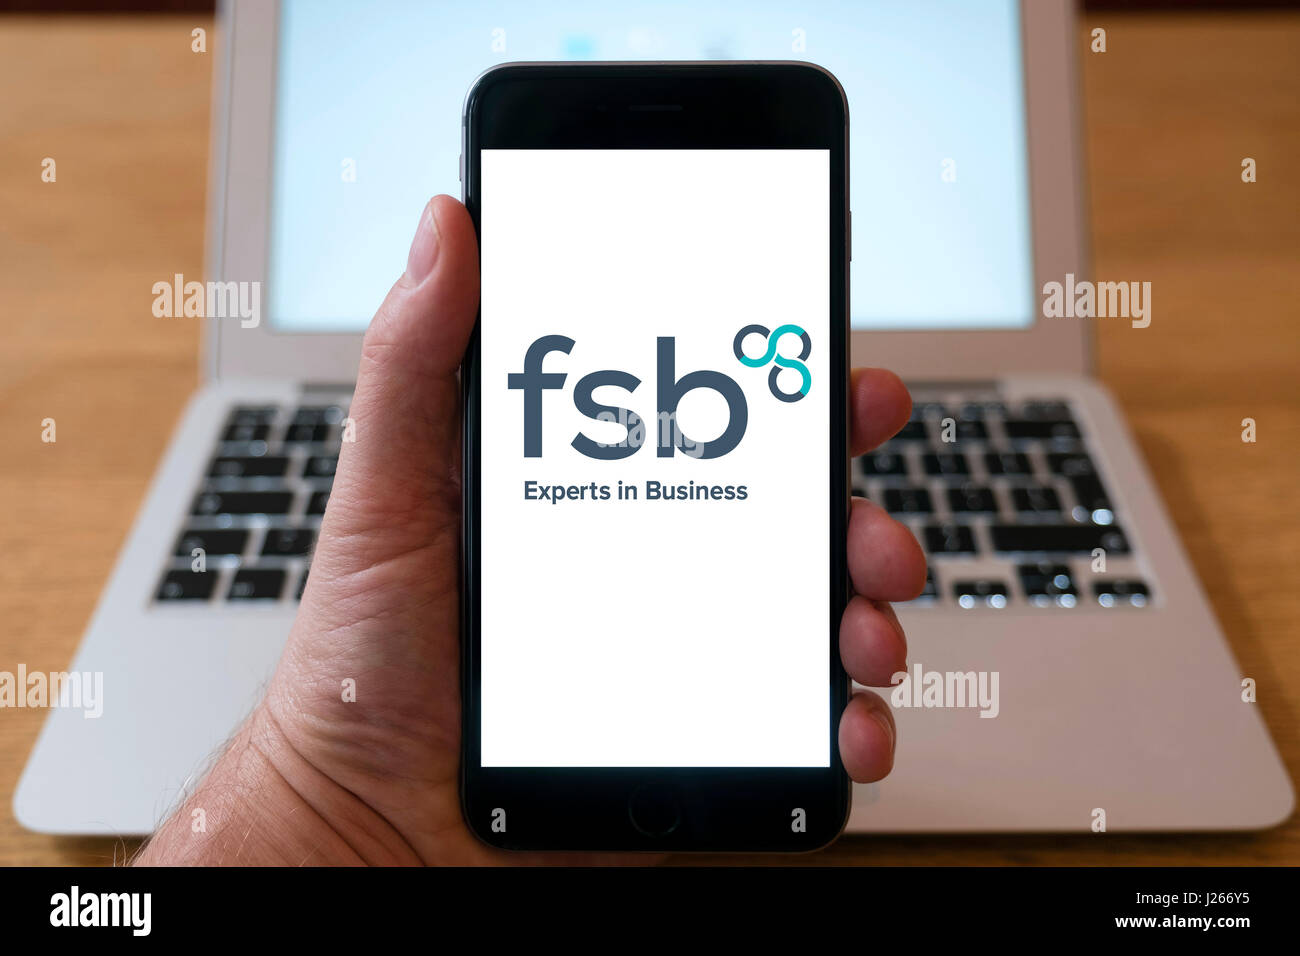 Logo of FSB, Federation of Small Businesses on smart phone screen - Stock Image